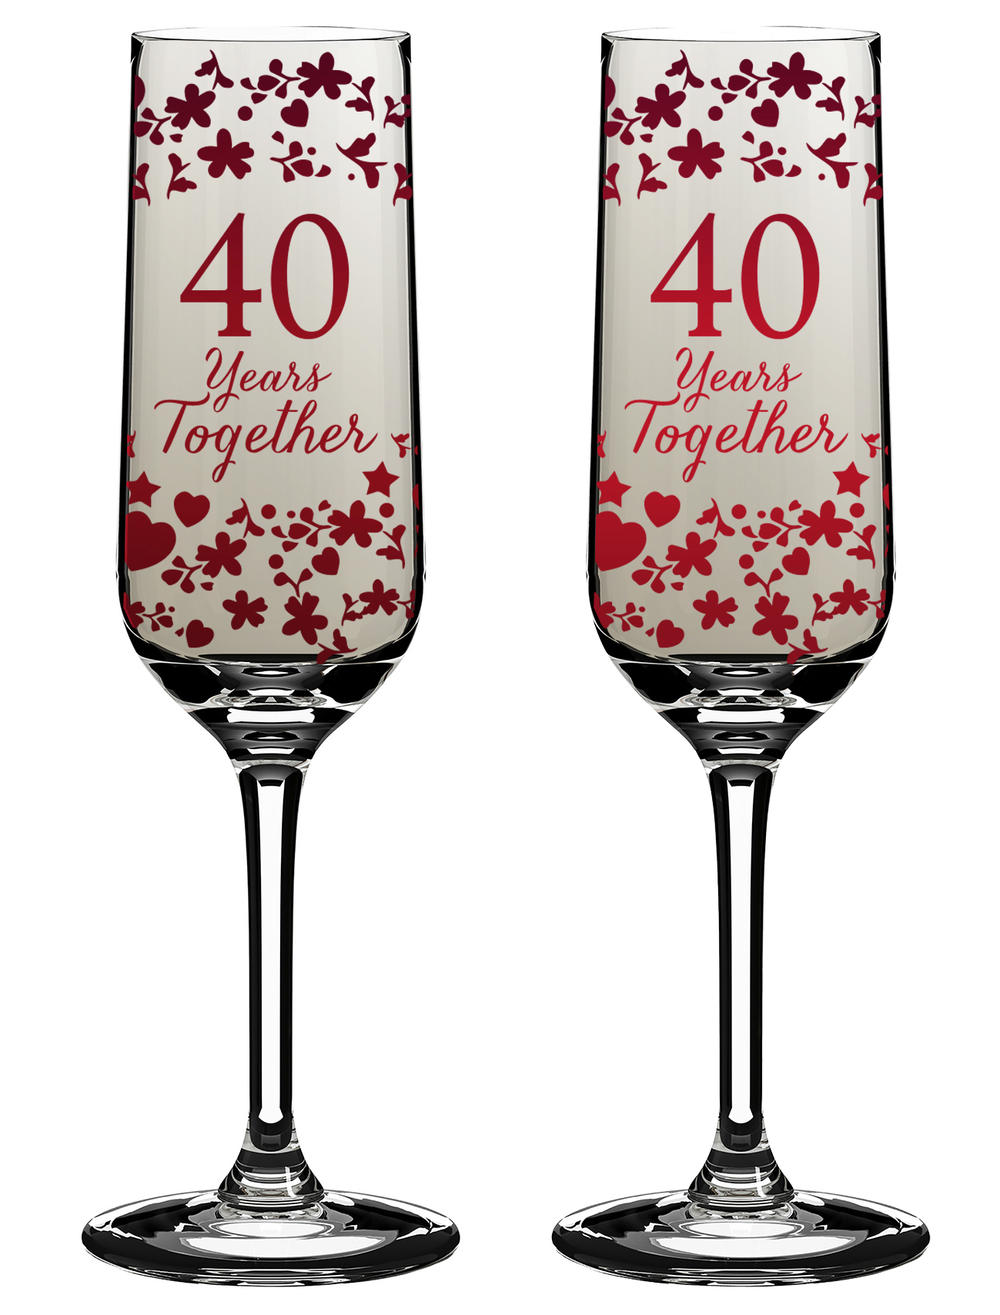 40 Years Together 40th Anniversary Champagne Flutes In Gift Box